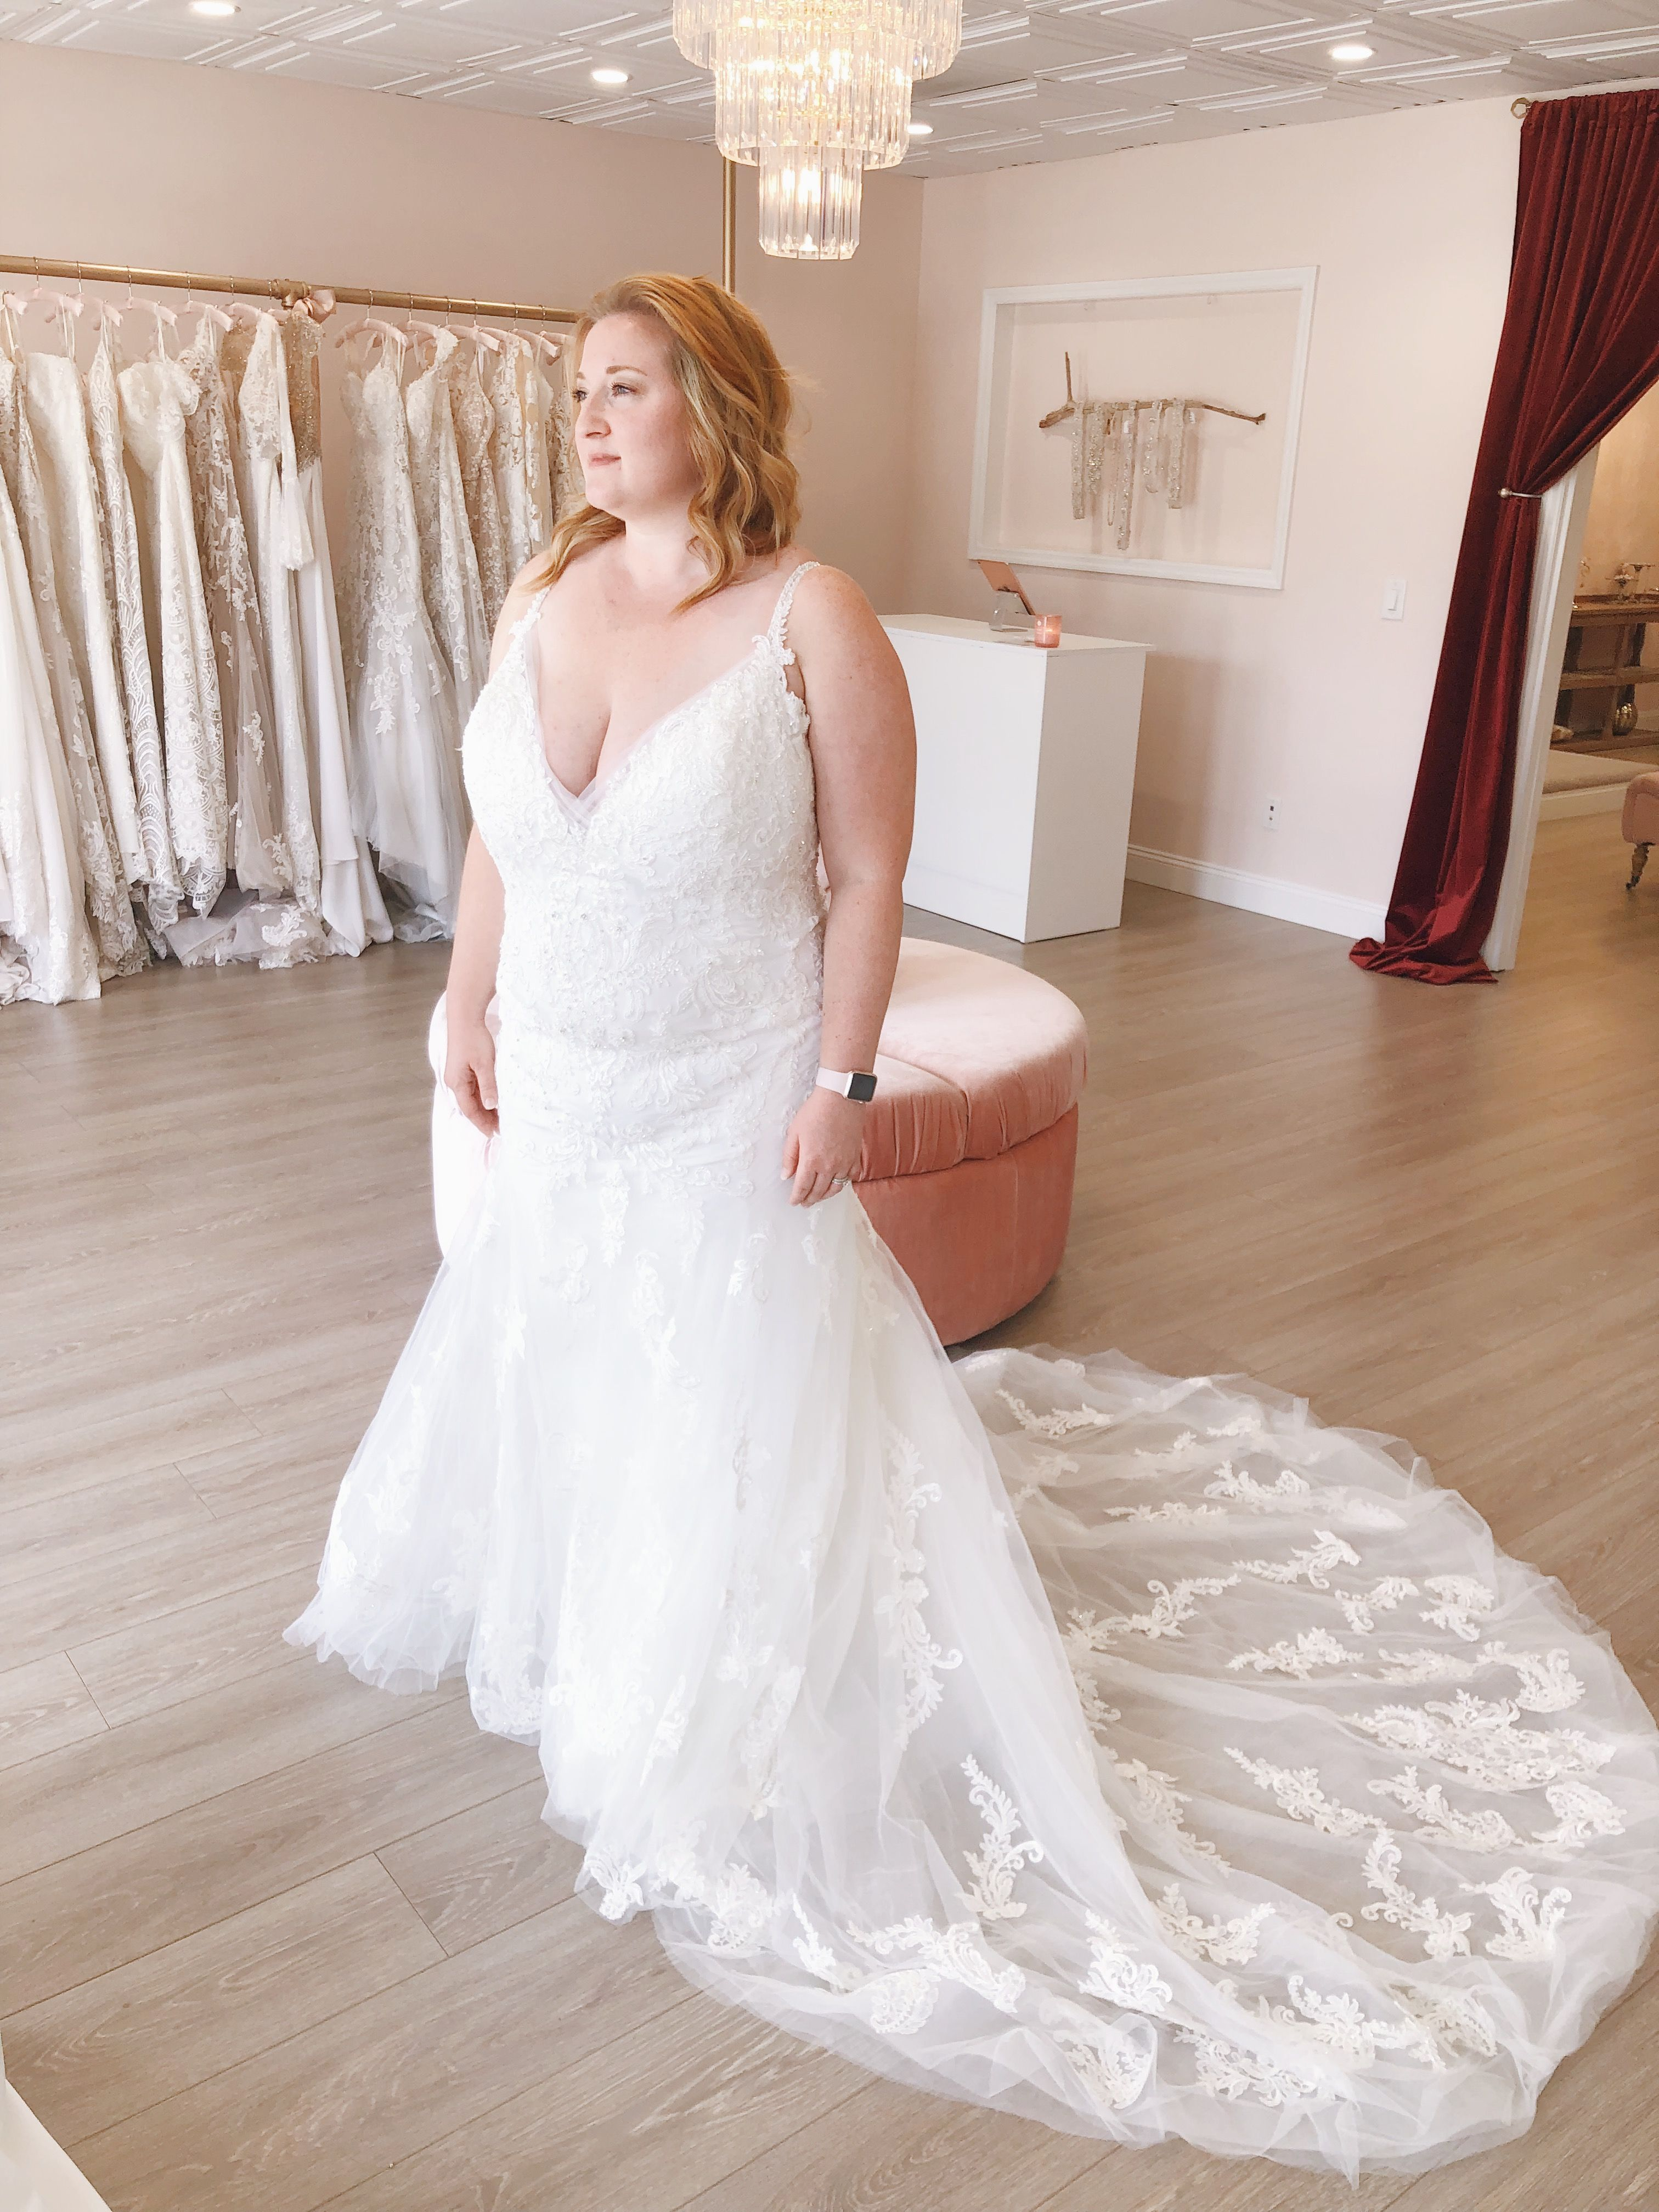 New Plus Size Wedding Dresses At Beauty Within Bridal In Fernandina Beach Florida Plus Size Wedding Dresses With Sleeves Ivory Wedding Dress Wedding Dresses [ 4032 x 3024 Pixel ]